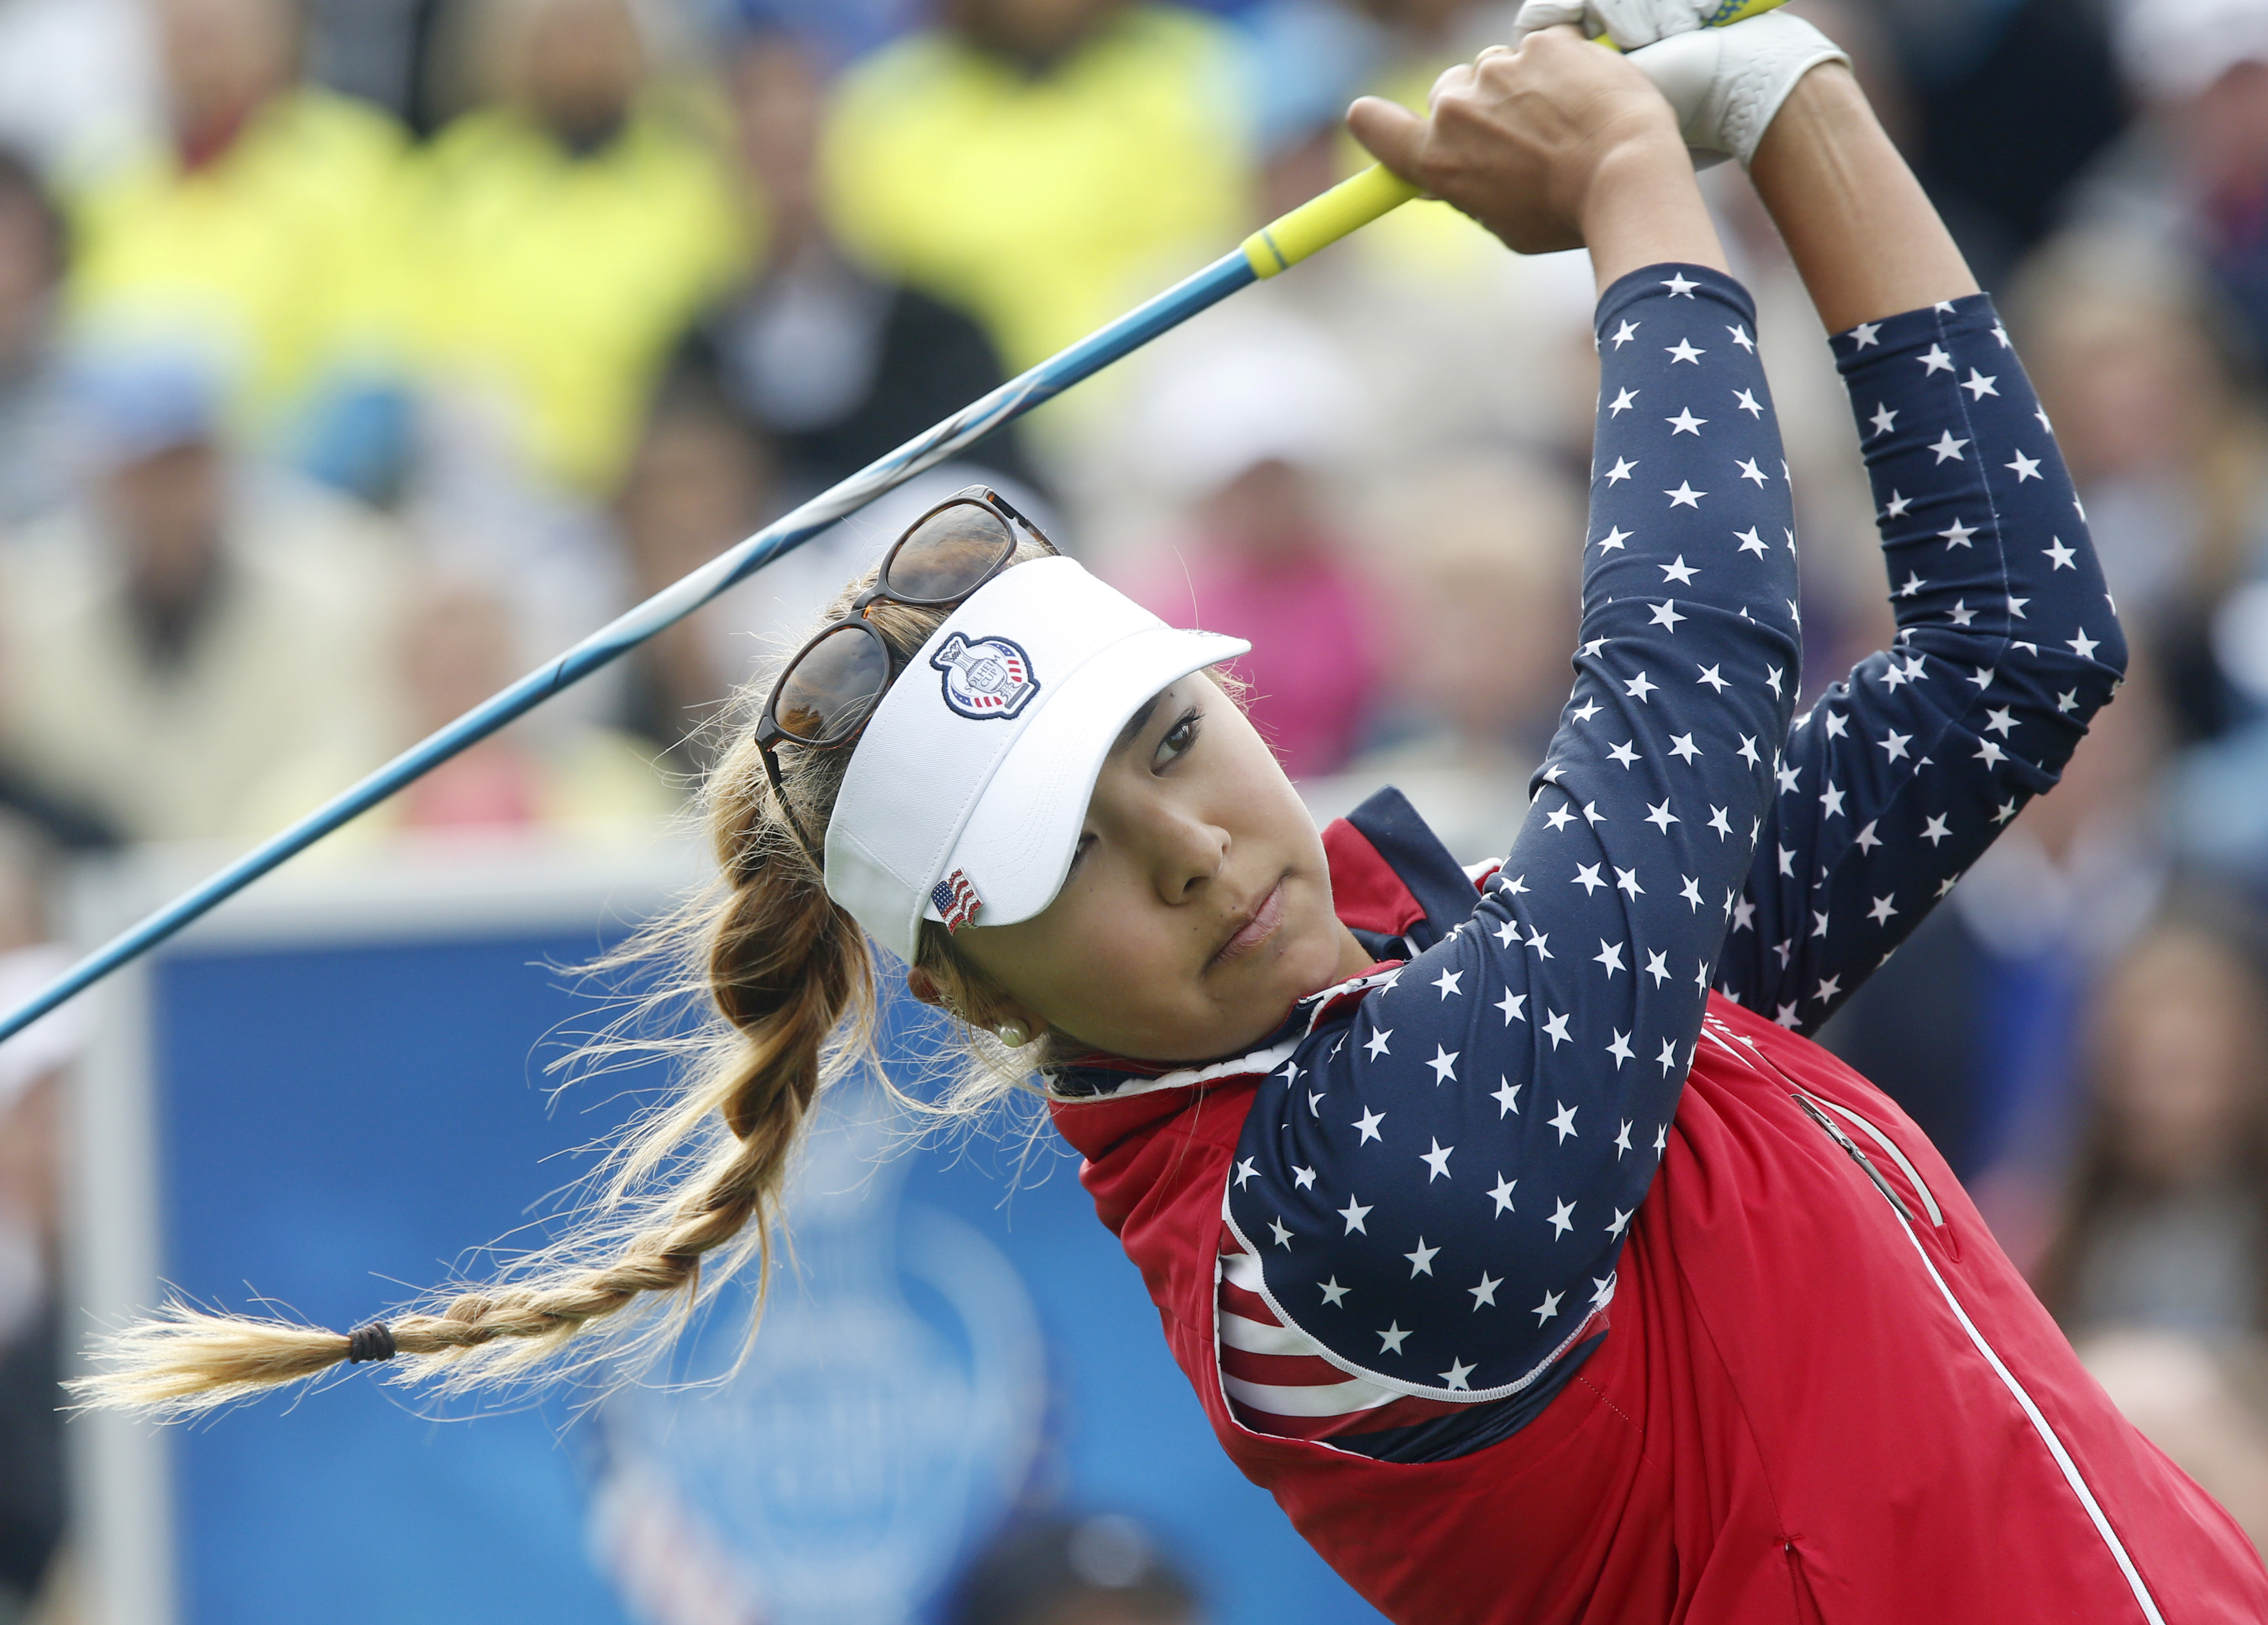 United States' Alison Lee tees off in the singles matches on Day3 of the Golf Solheim Cup in St.Leon-Rot, Germany, Sunday, Sept. 20, 2015.(AP Photo/Michael Probst)